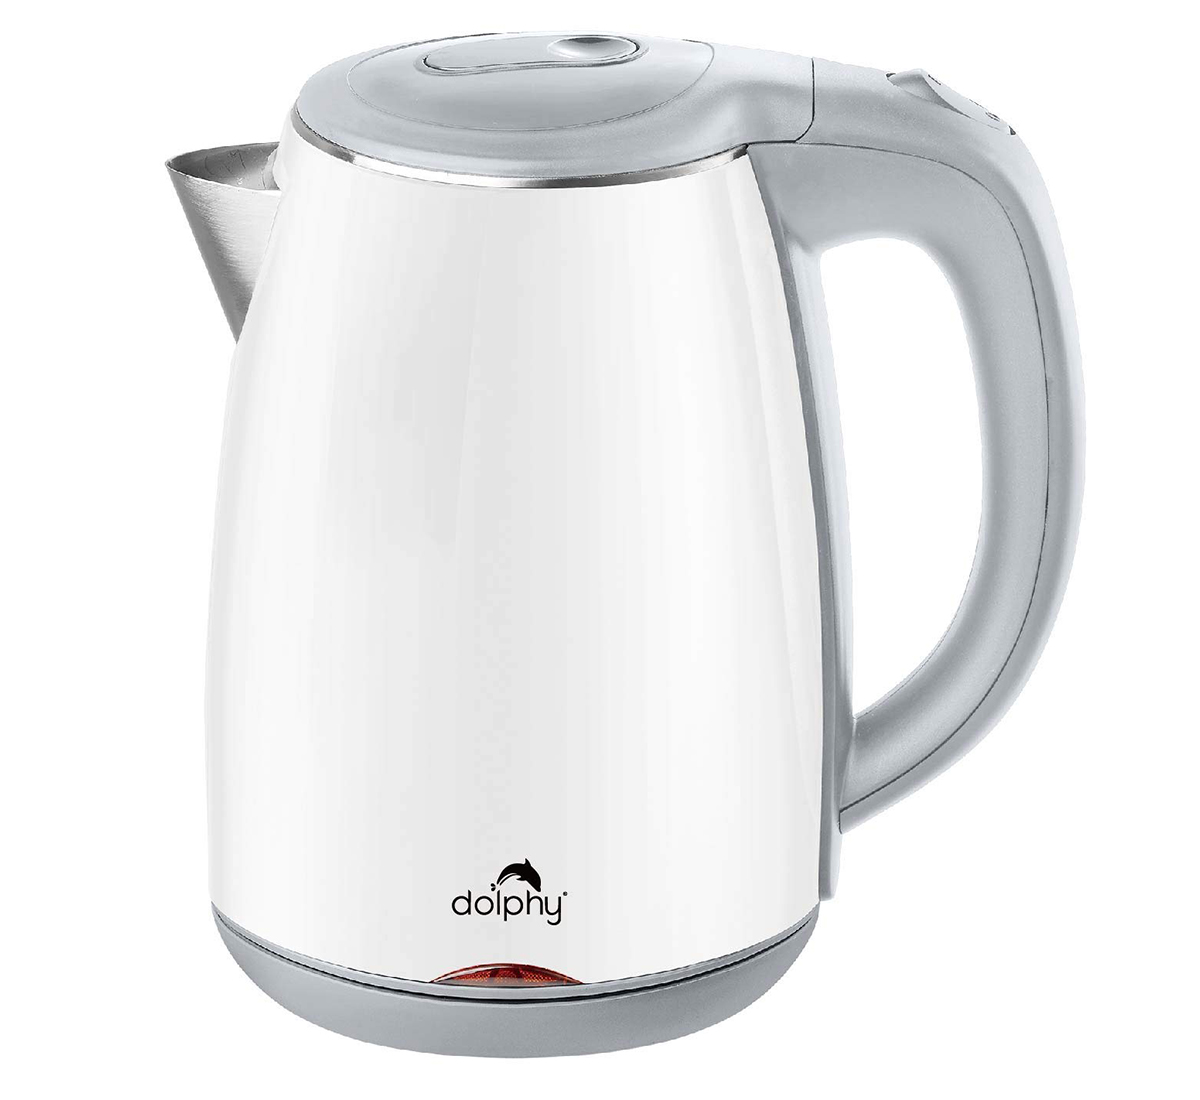 1.2 Liter Electric Kettle